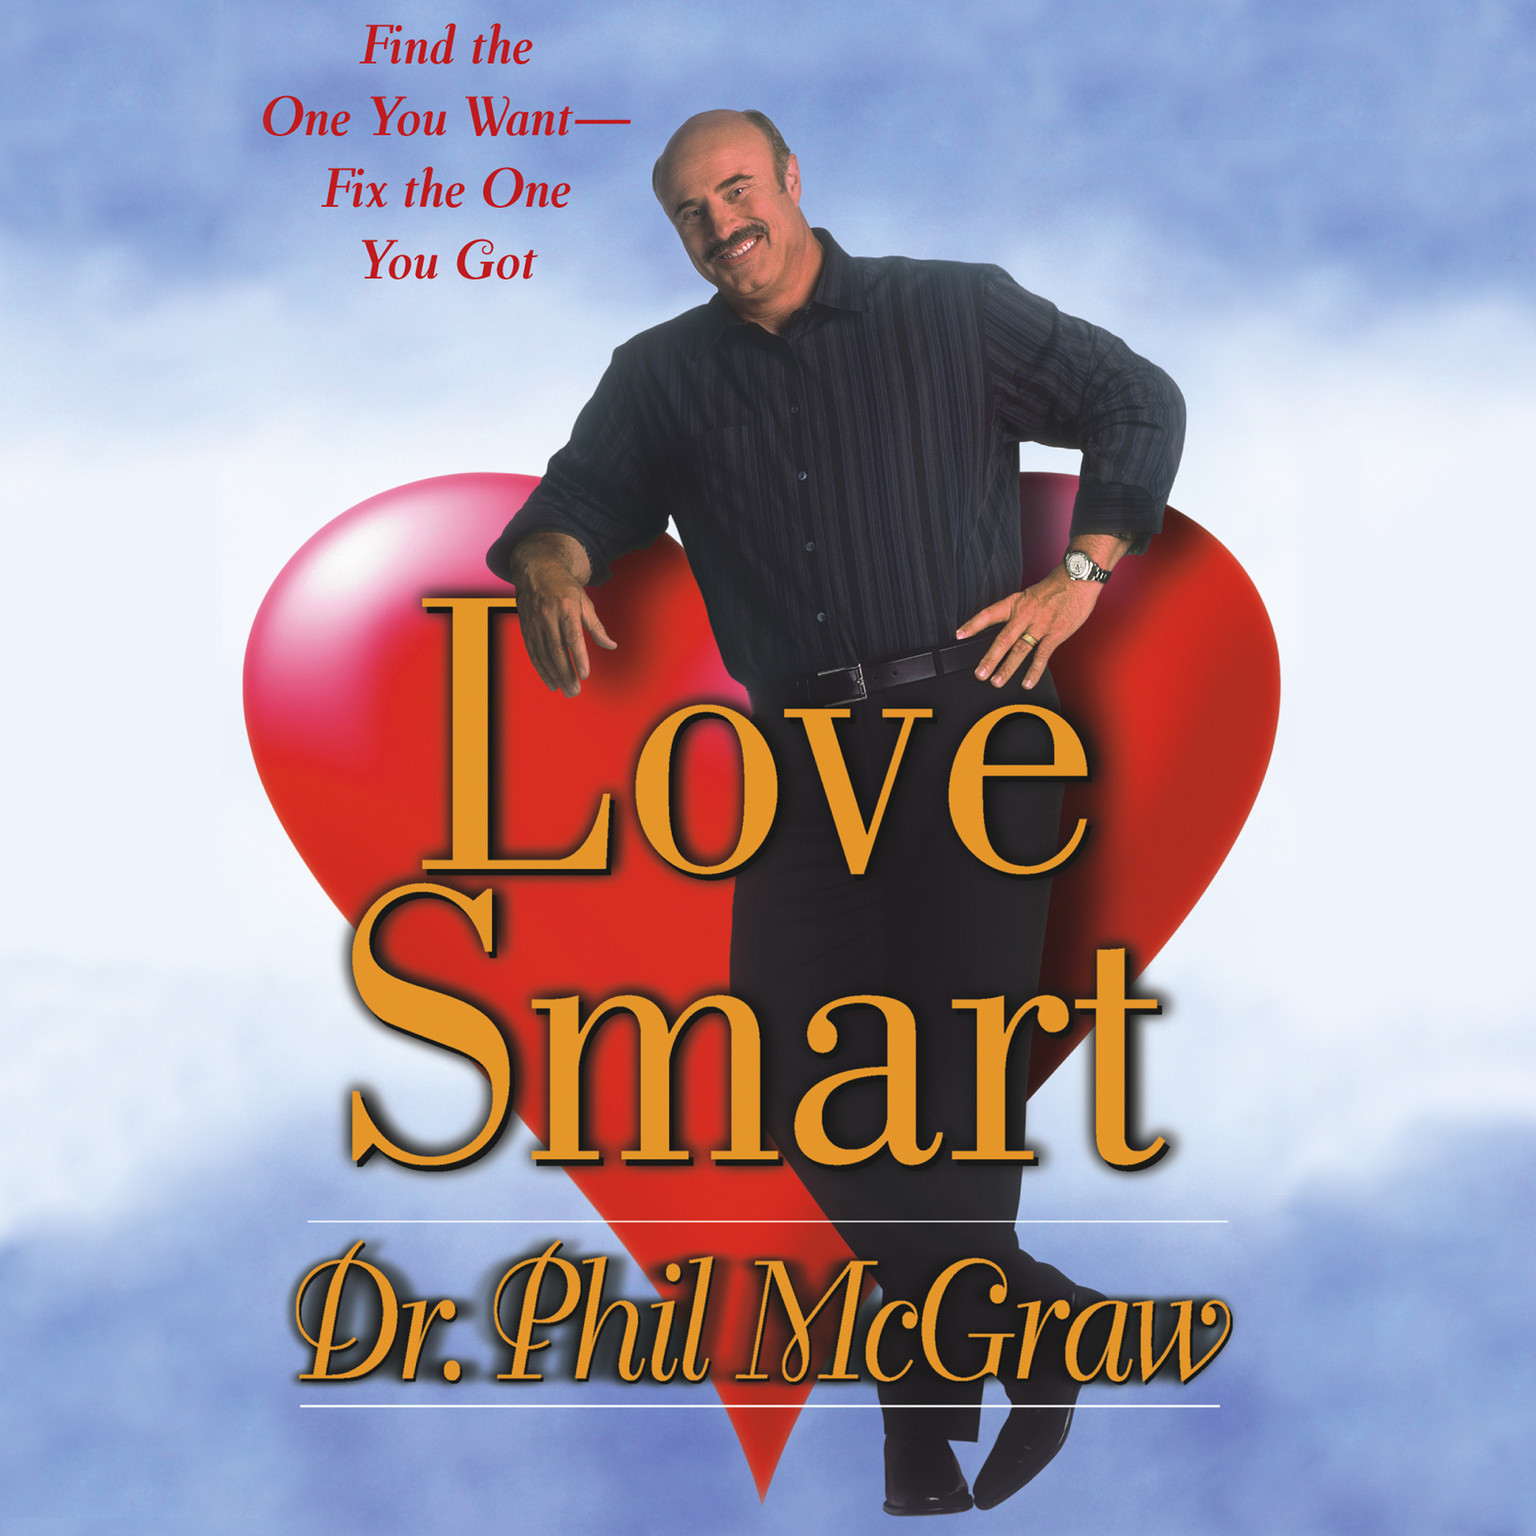 Printable Love Smart: Find the One You Want—Fix the One You Got Audiobook Cover Art